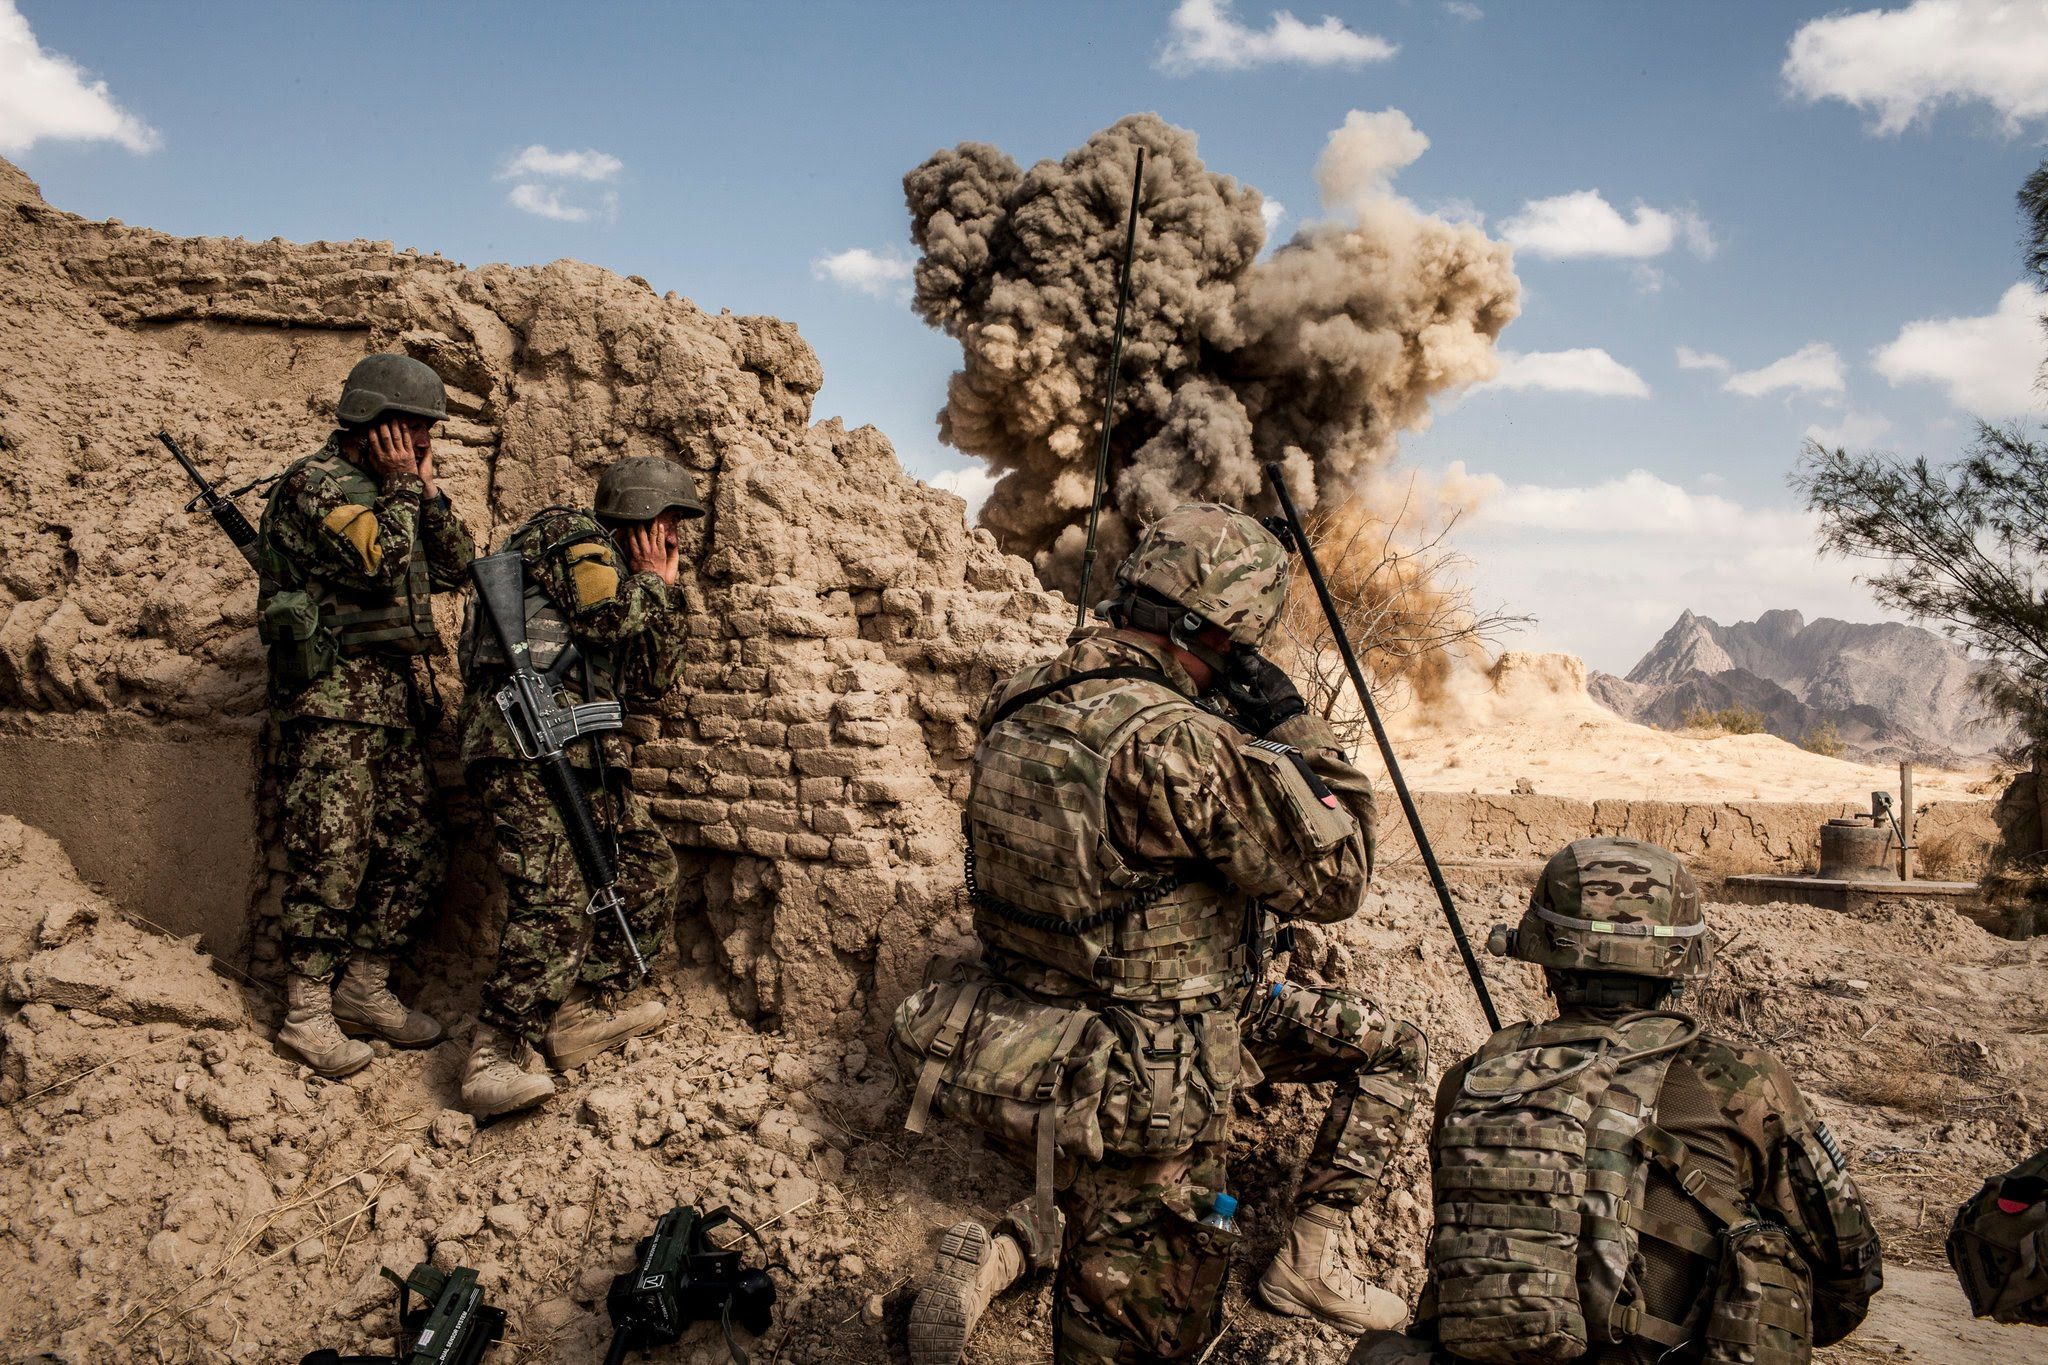 Afghanistan War Real Combat Heavy Clashes Us Snipers Vs Taliban Snipers In Action Afghanistan War Afghanistan Military